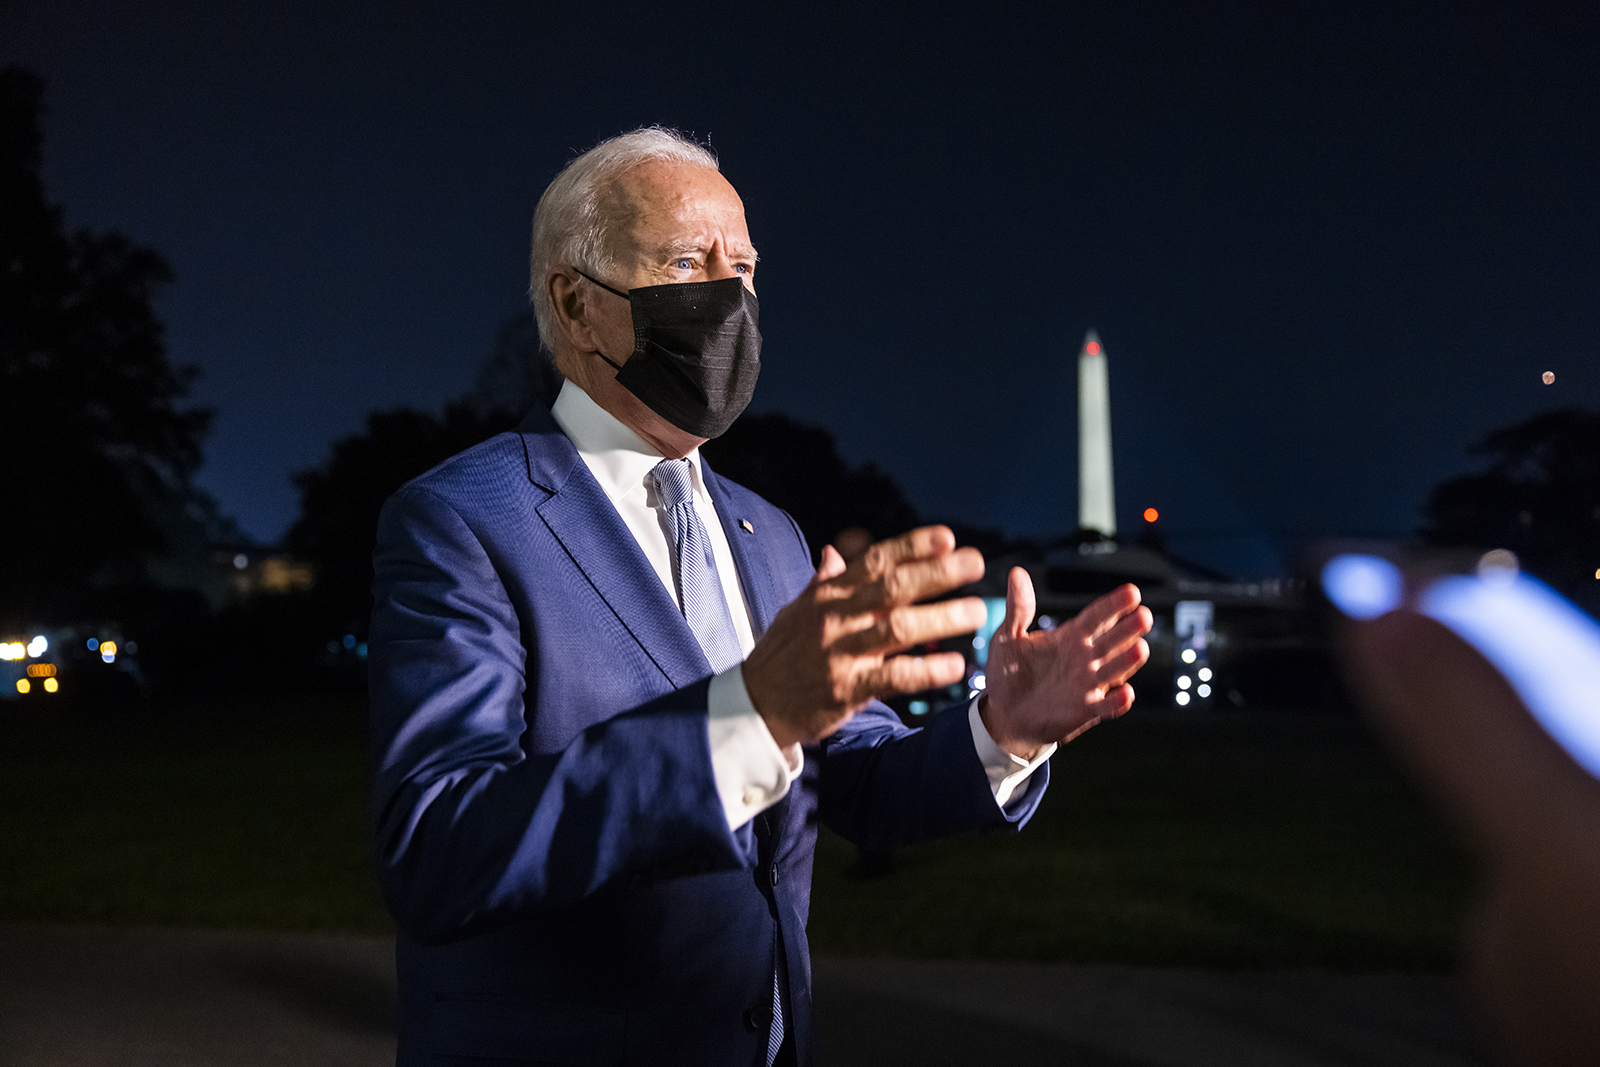 President Joe Biden speaks to members of the media after he arrived on the South Lawn of the White House in Washington on Tuesday.